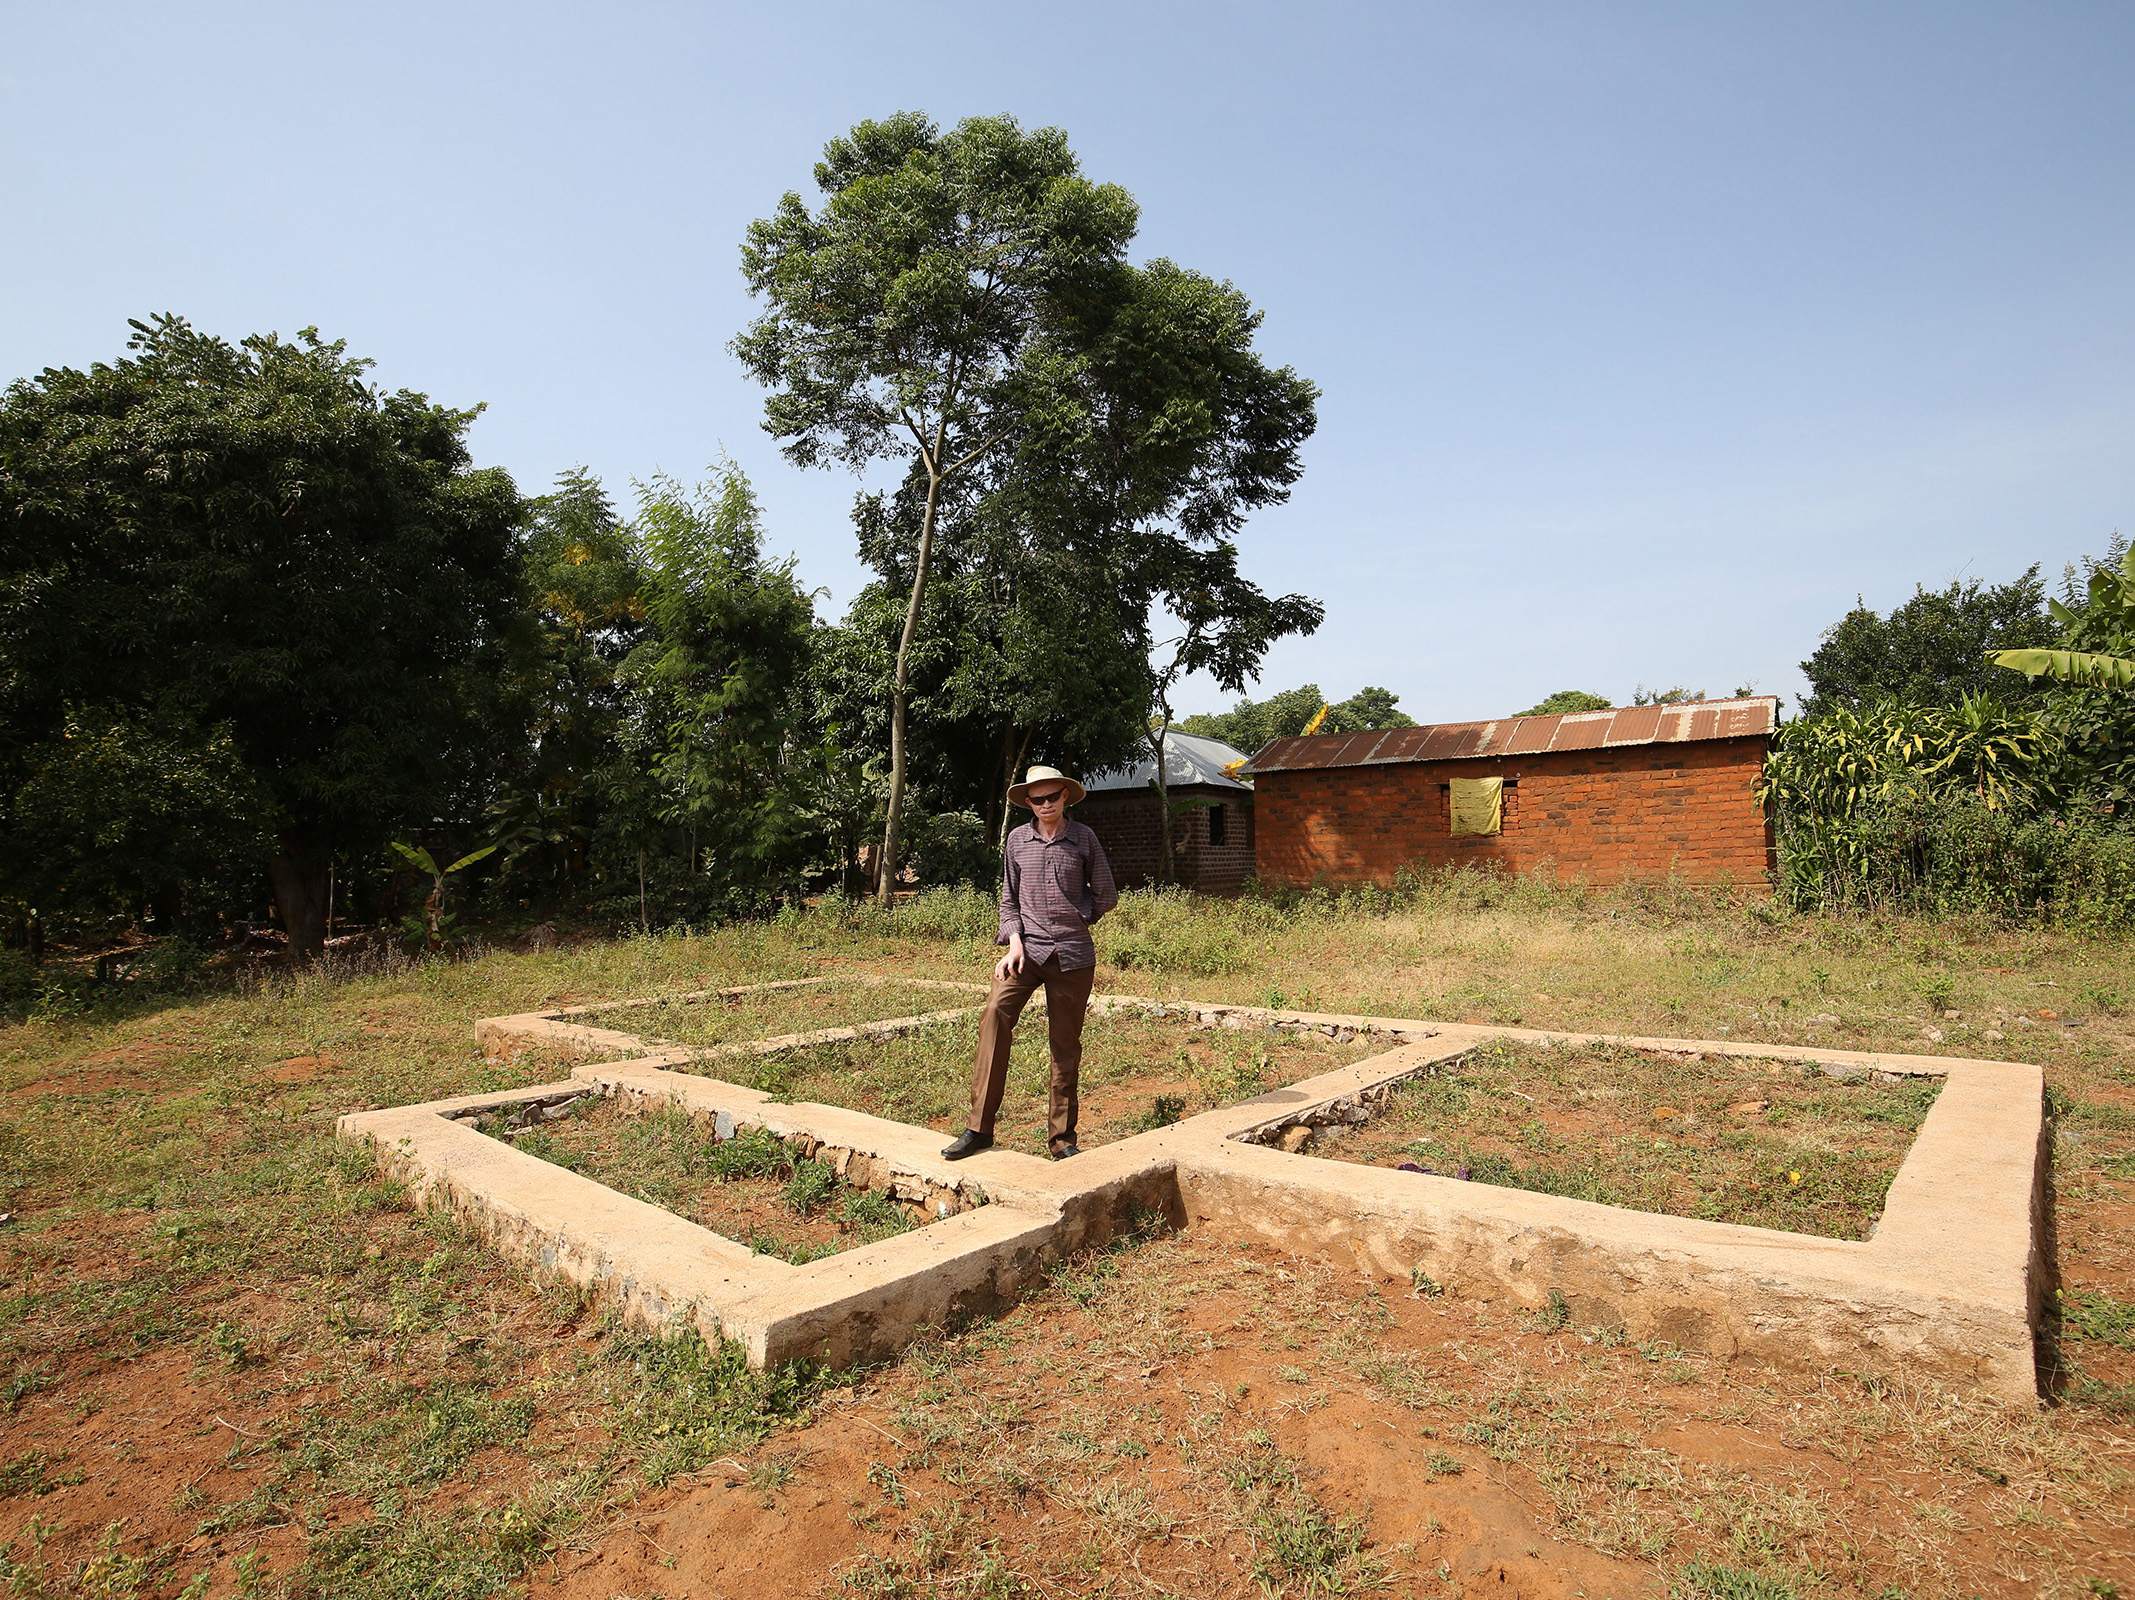 Risicky plans to build his own home.